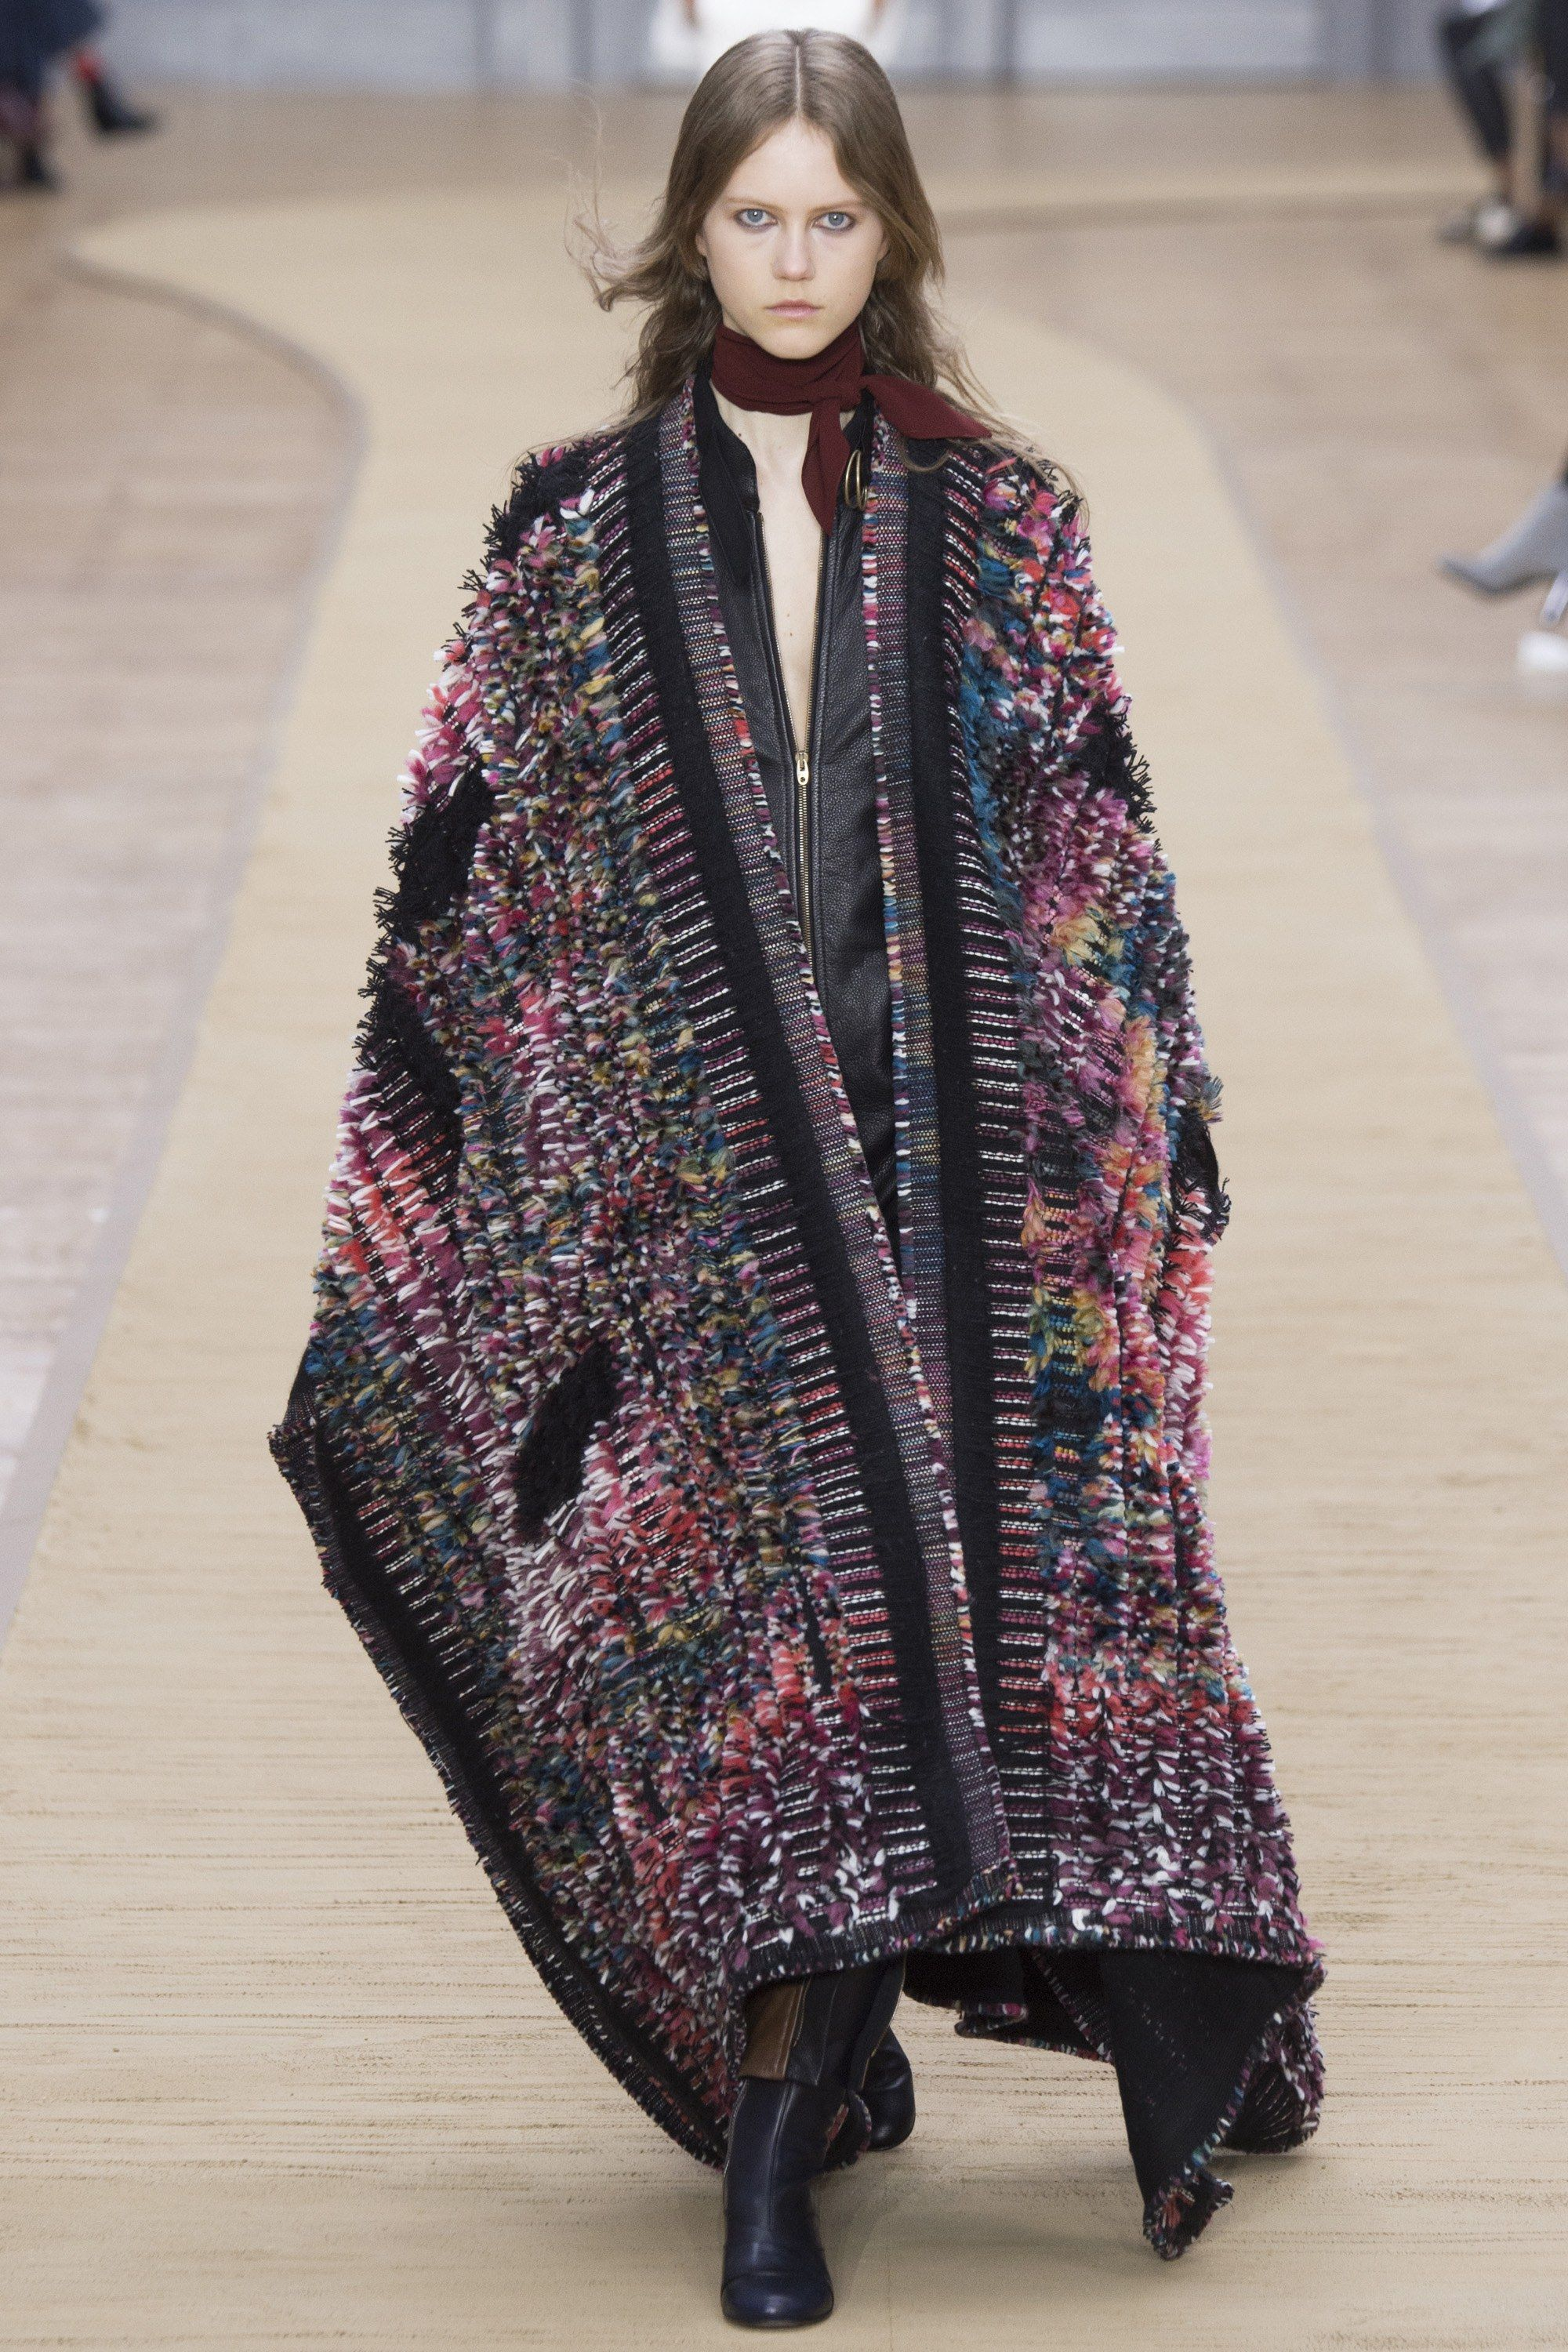 Chloé Fall 2016 Ready-to-Wear Fashion Show - Julie Hoomans ---I WANT TO WEAR THIS EVERY DAY